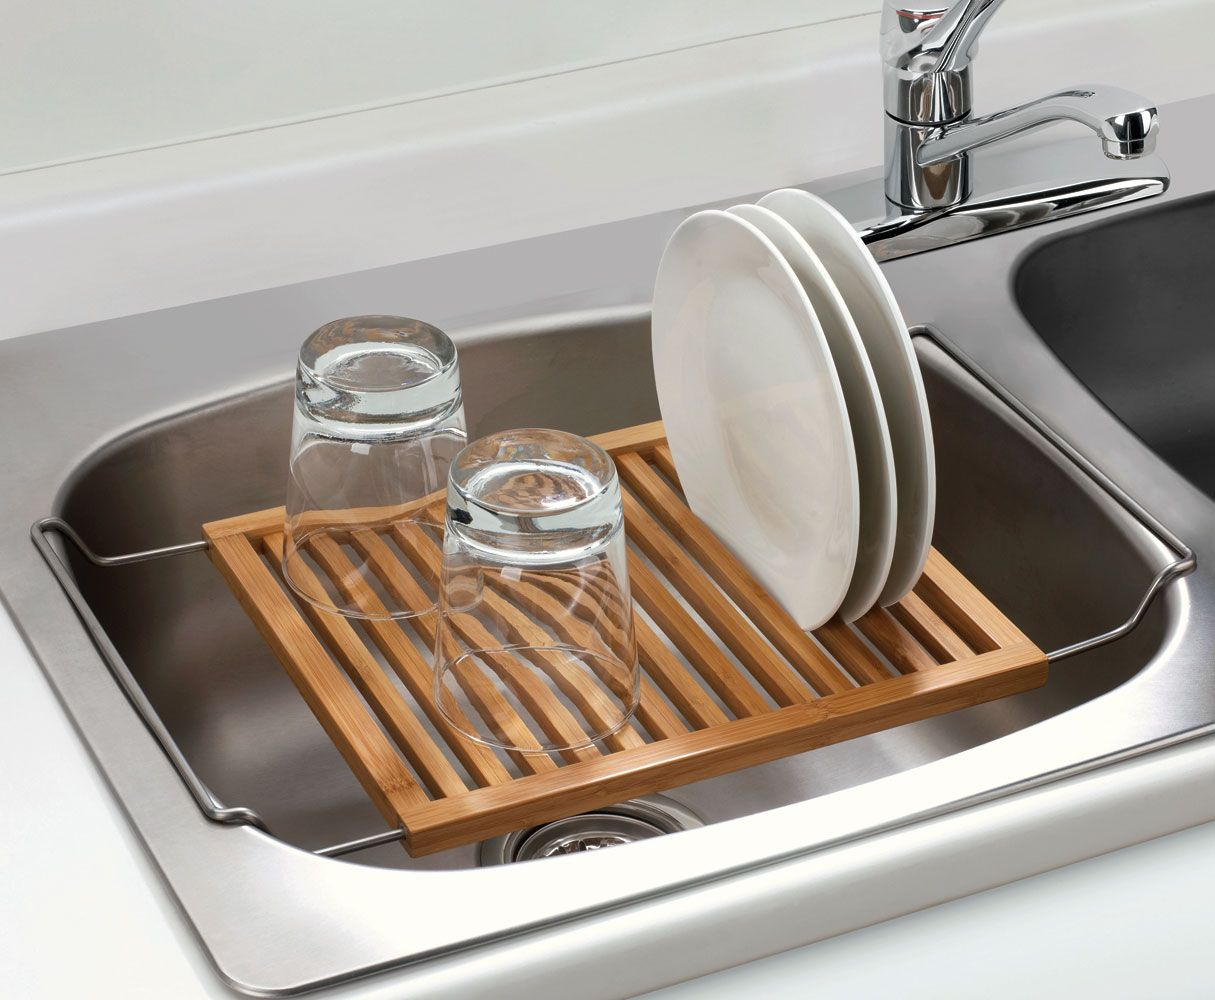 Good Over The Sink Dish Drying Rack In Bamboo